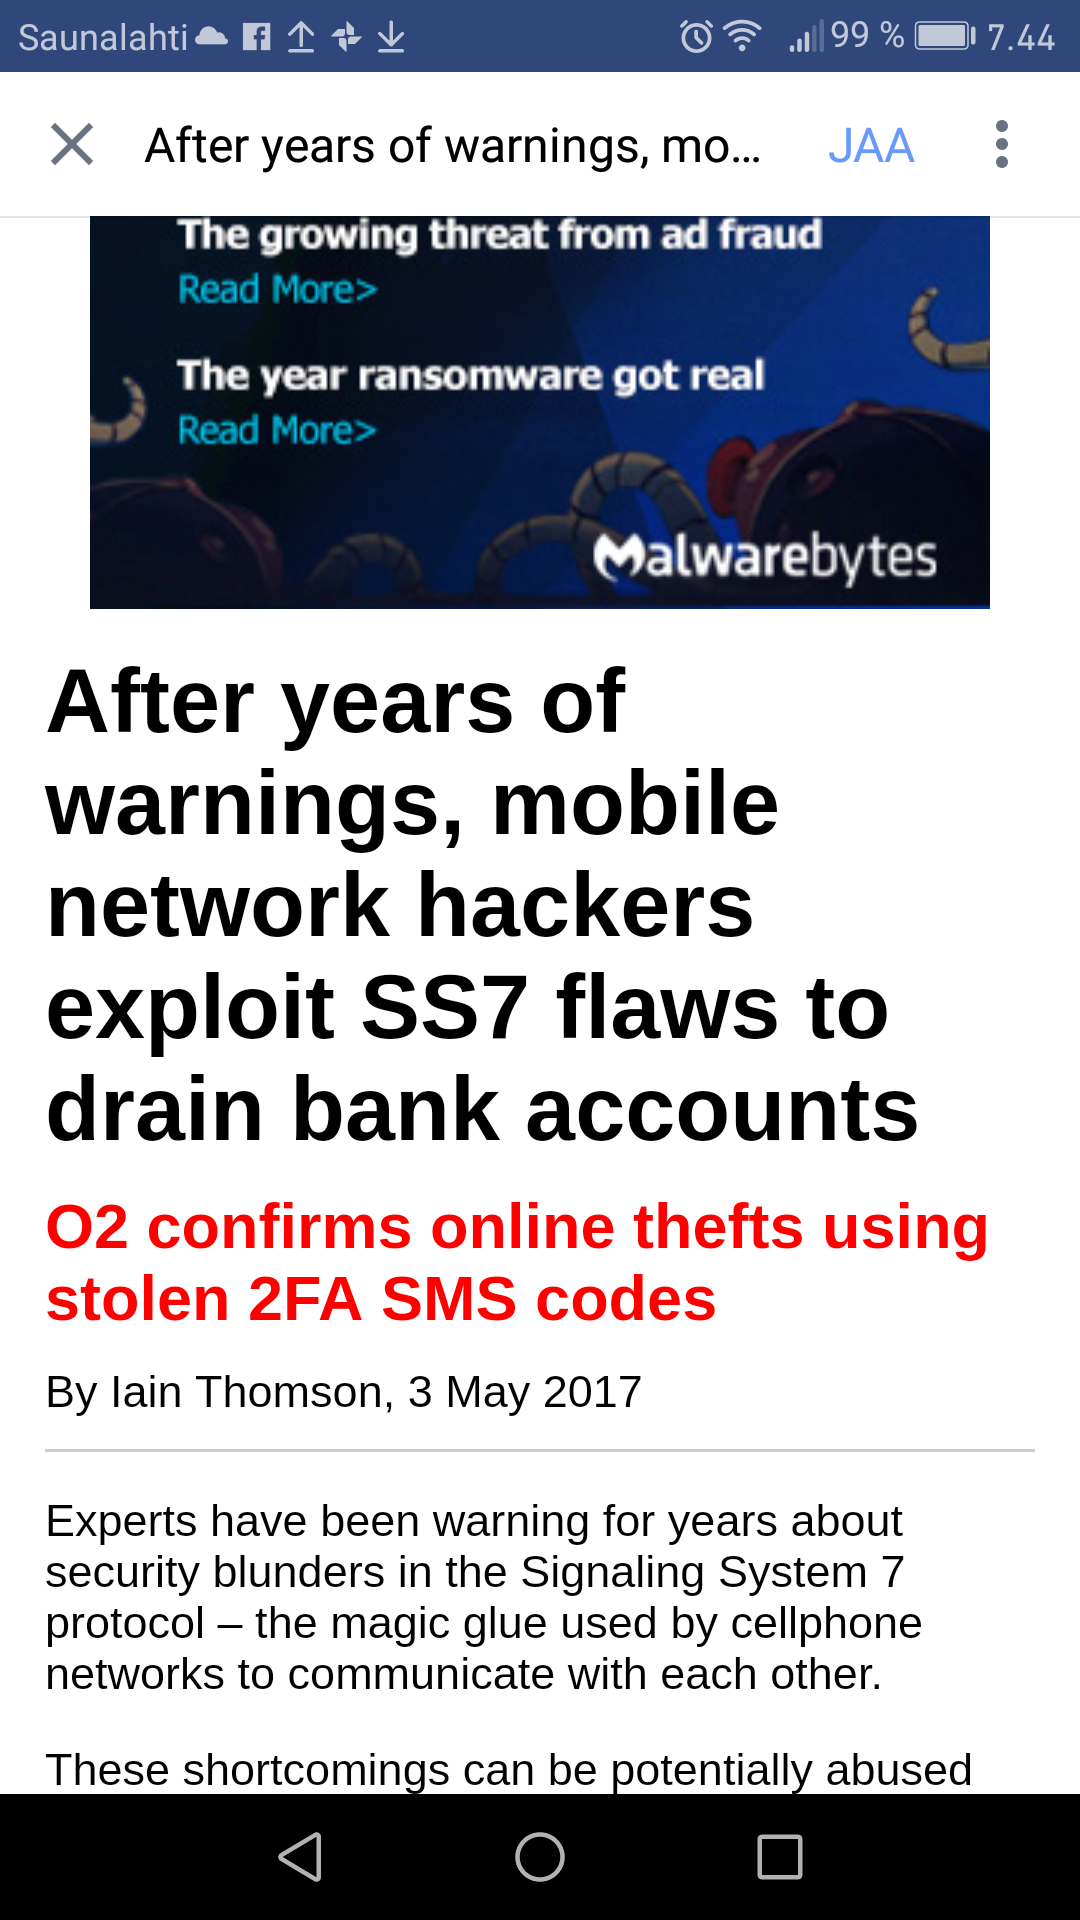 After years of warnings, mobile network hackers exploit SS7